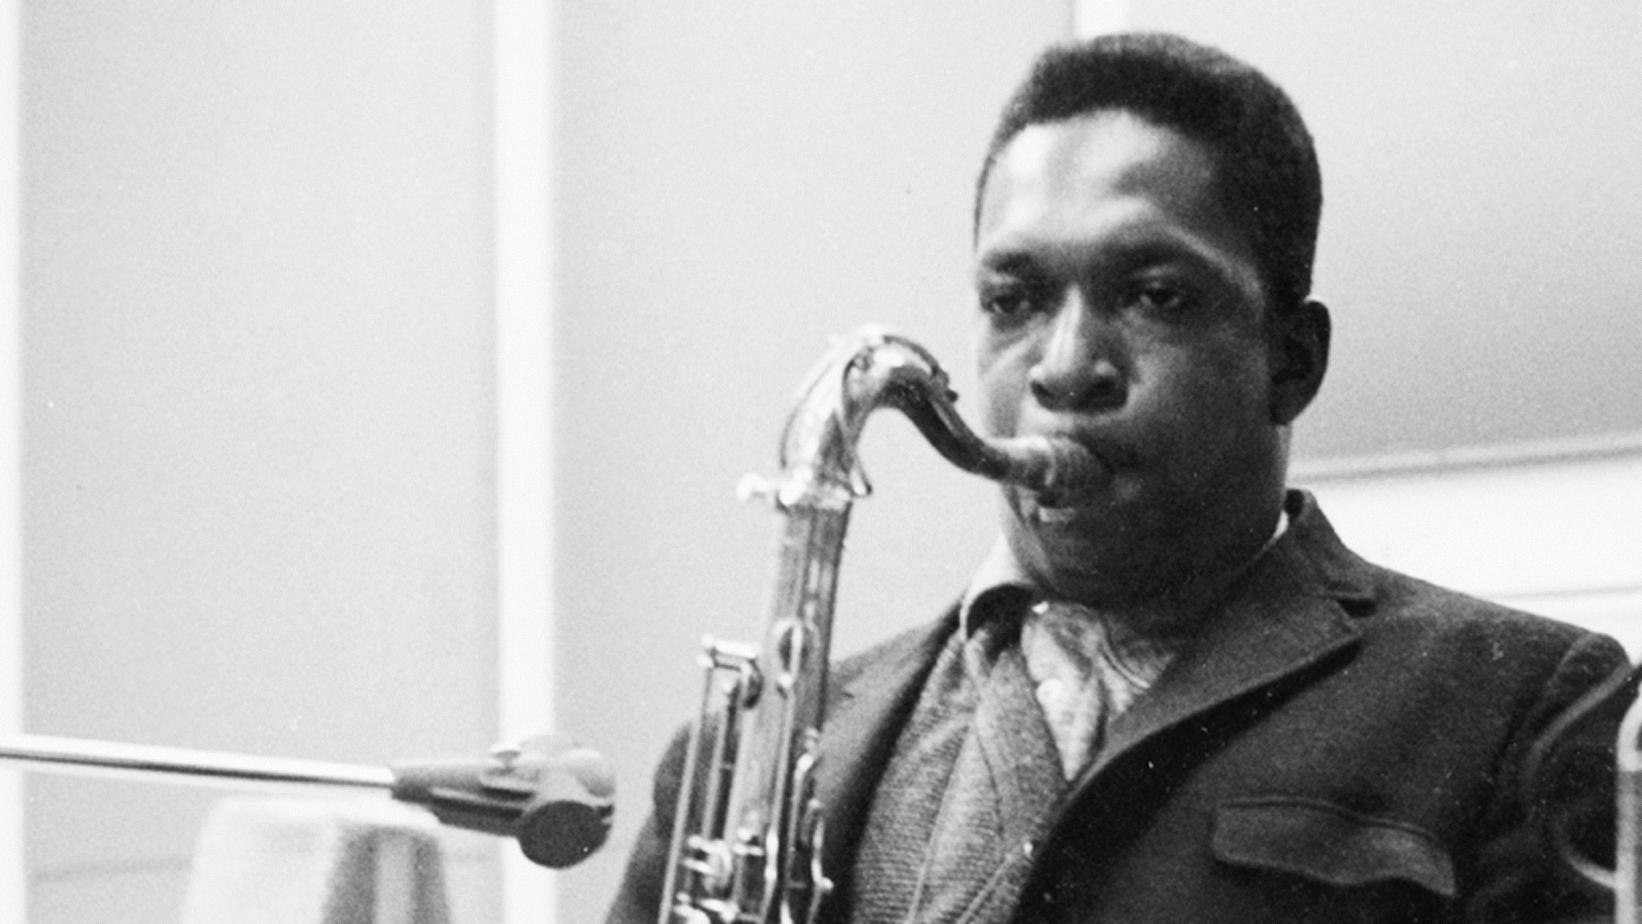 John Coltrane recording in 1960